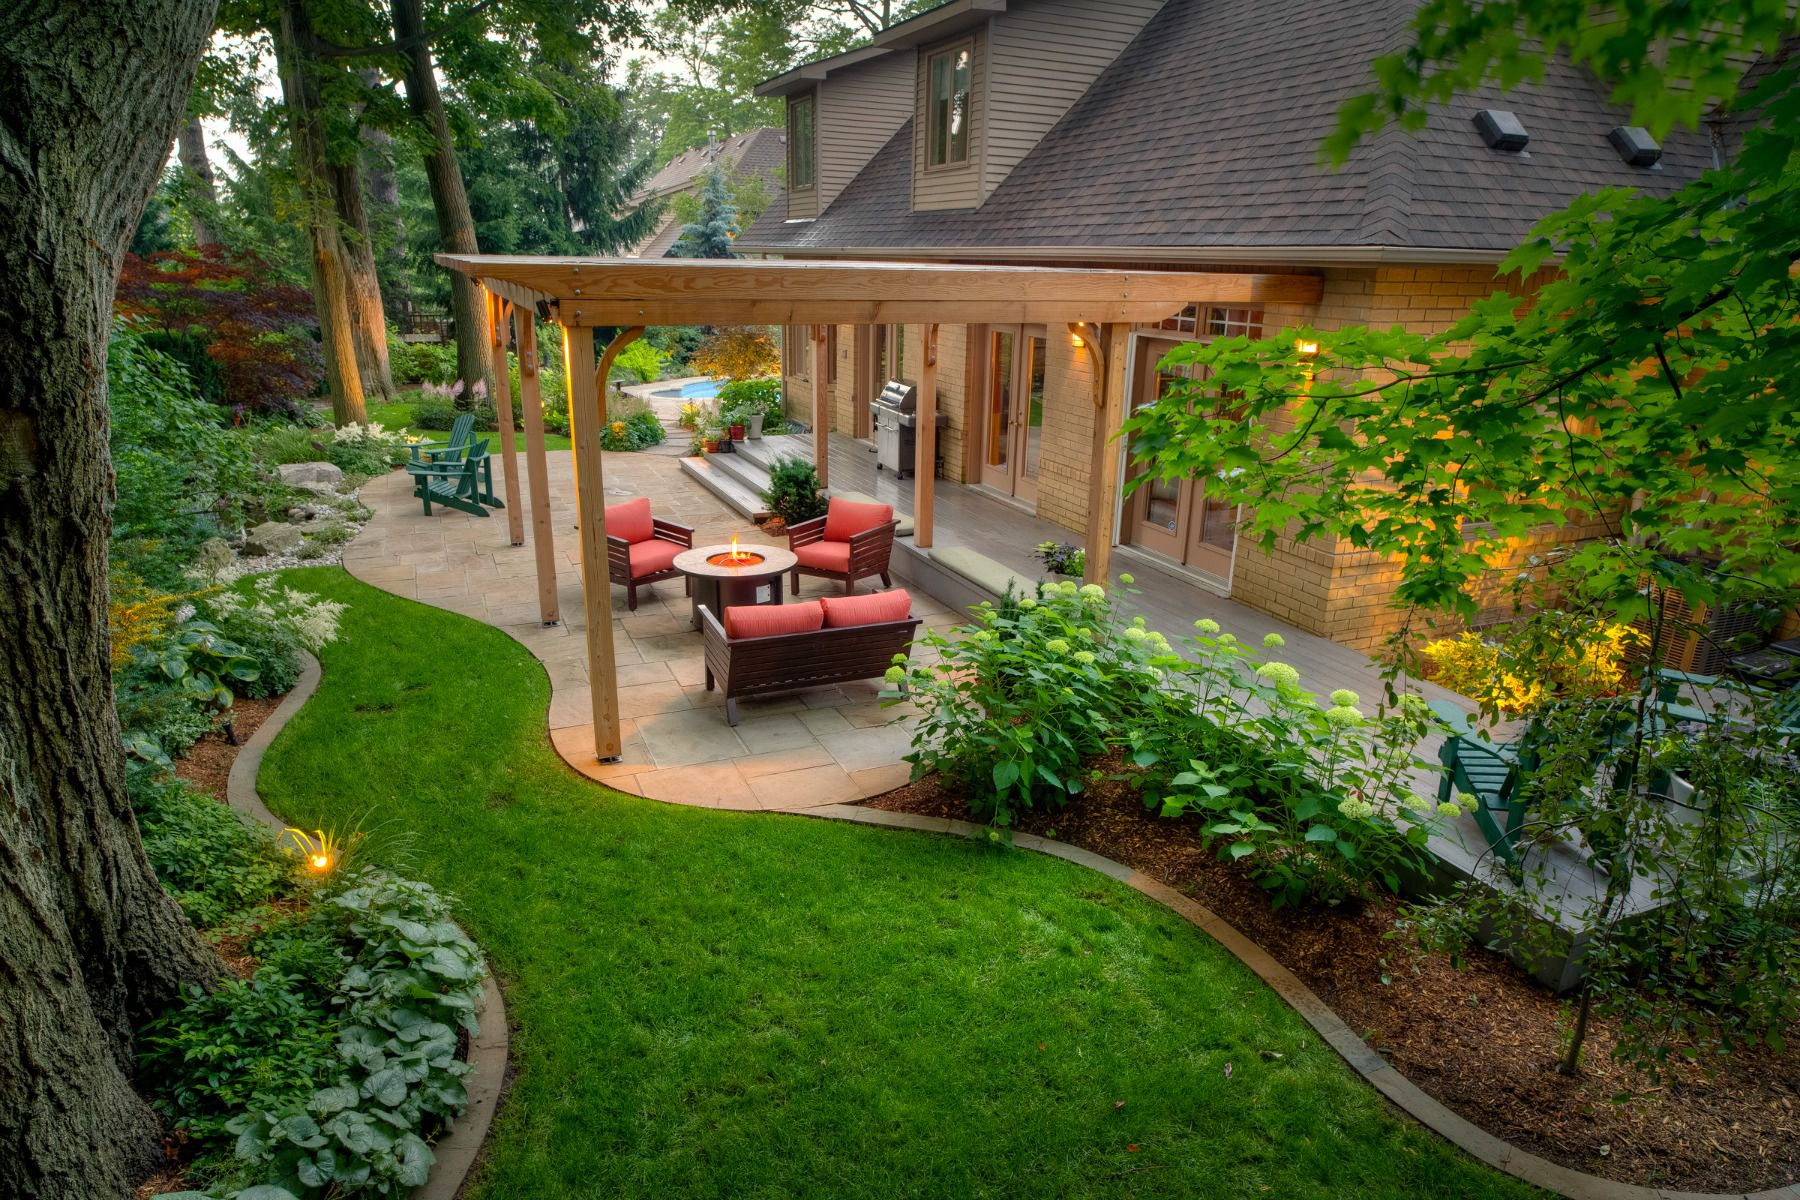 49 Backyard Landscaping Ideas to Inspire You on Backyard Garden Design id=82762